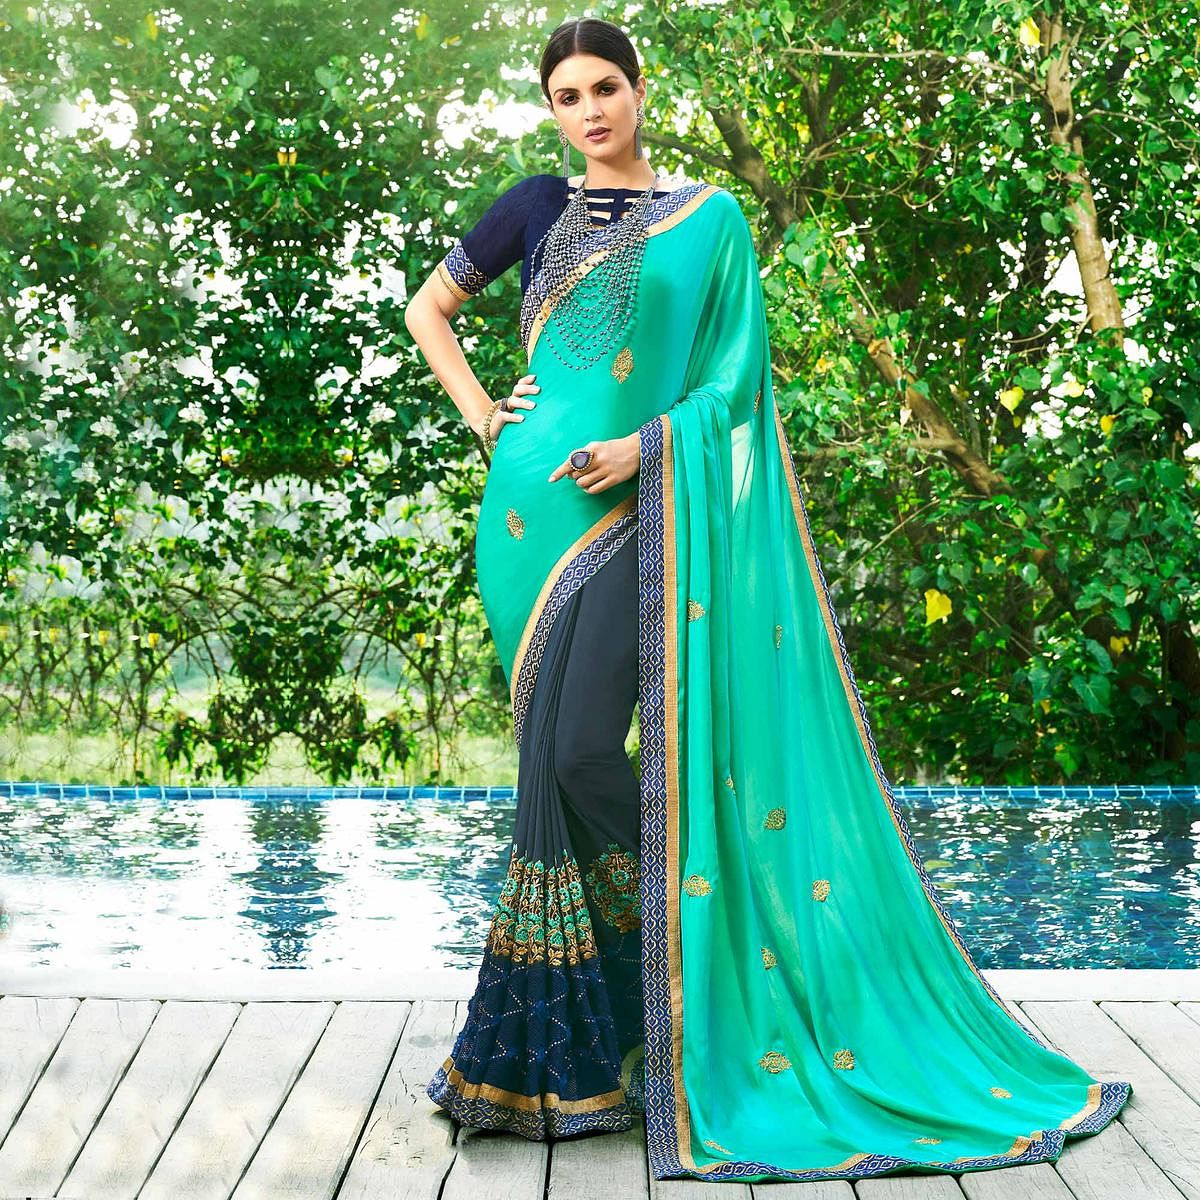 Elegant Gray-Turquoise Green Colored Partywear Embroidered Satin Silk-Georgette Half-Half Saree